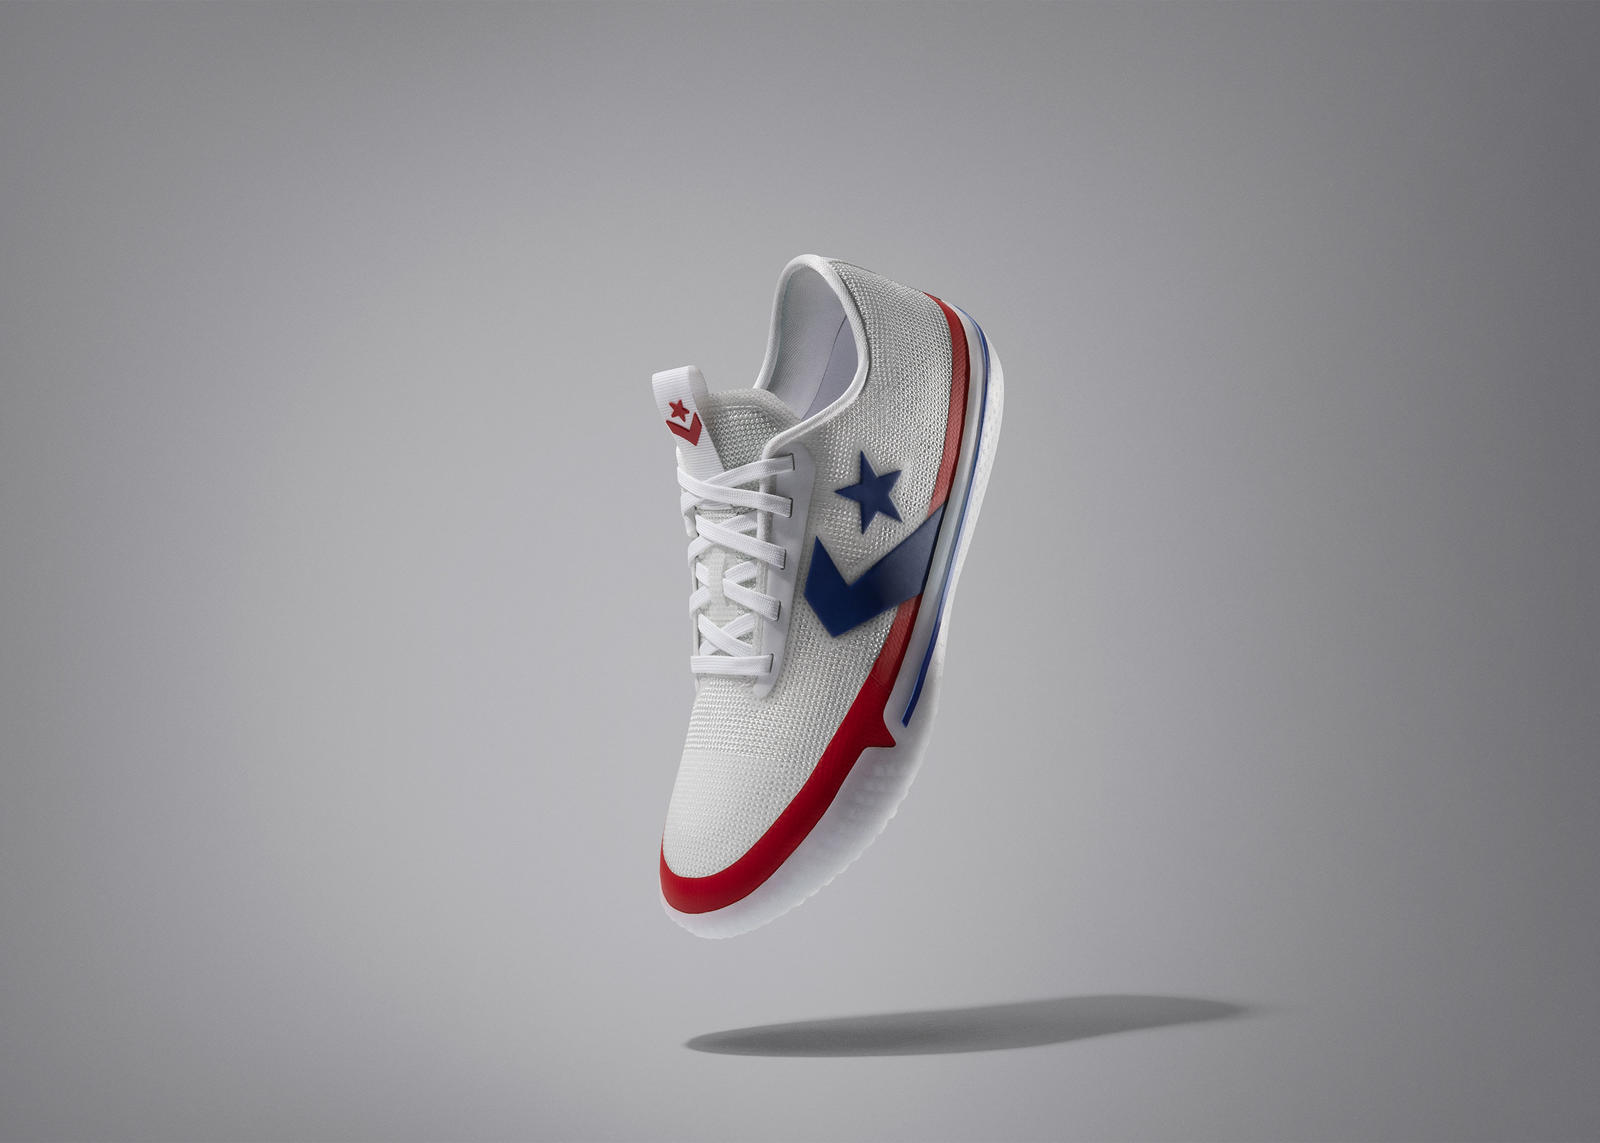 Jordan Brand Nike Converse NBA All-Star 2020 Footwear and Apparel Official Images and Release Dates 13